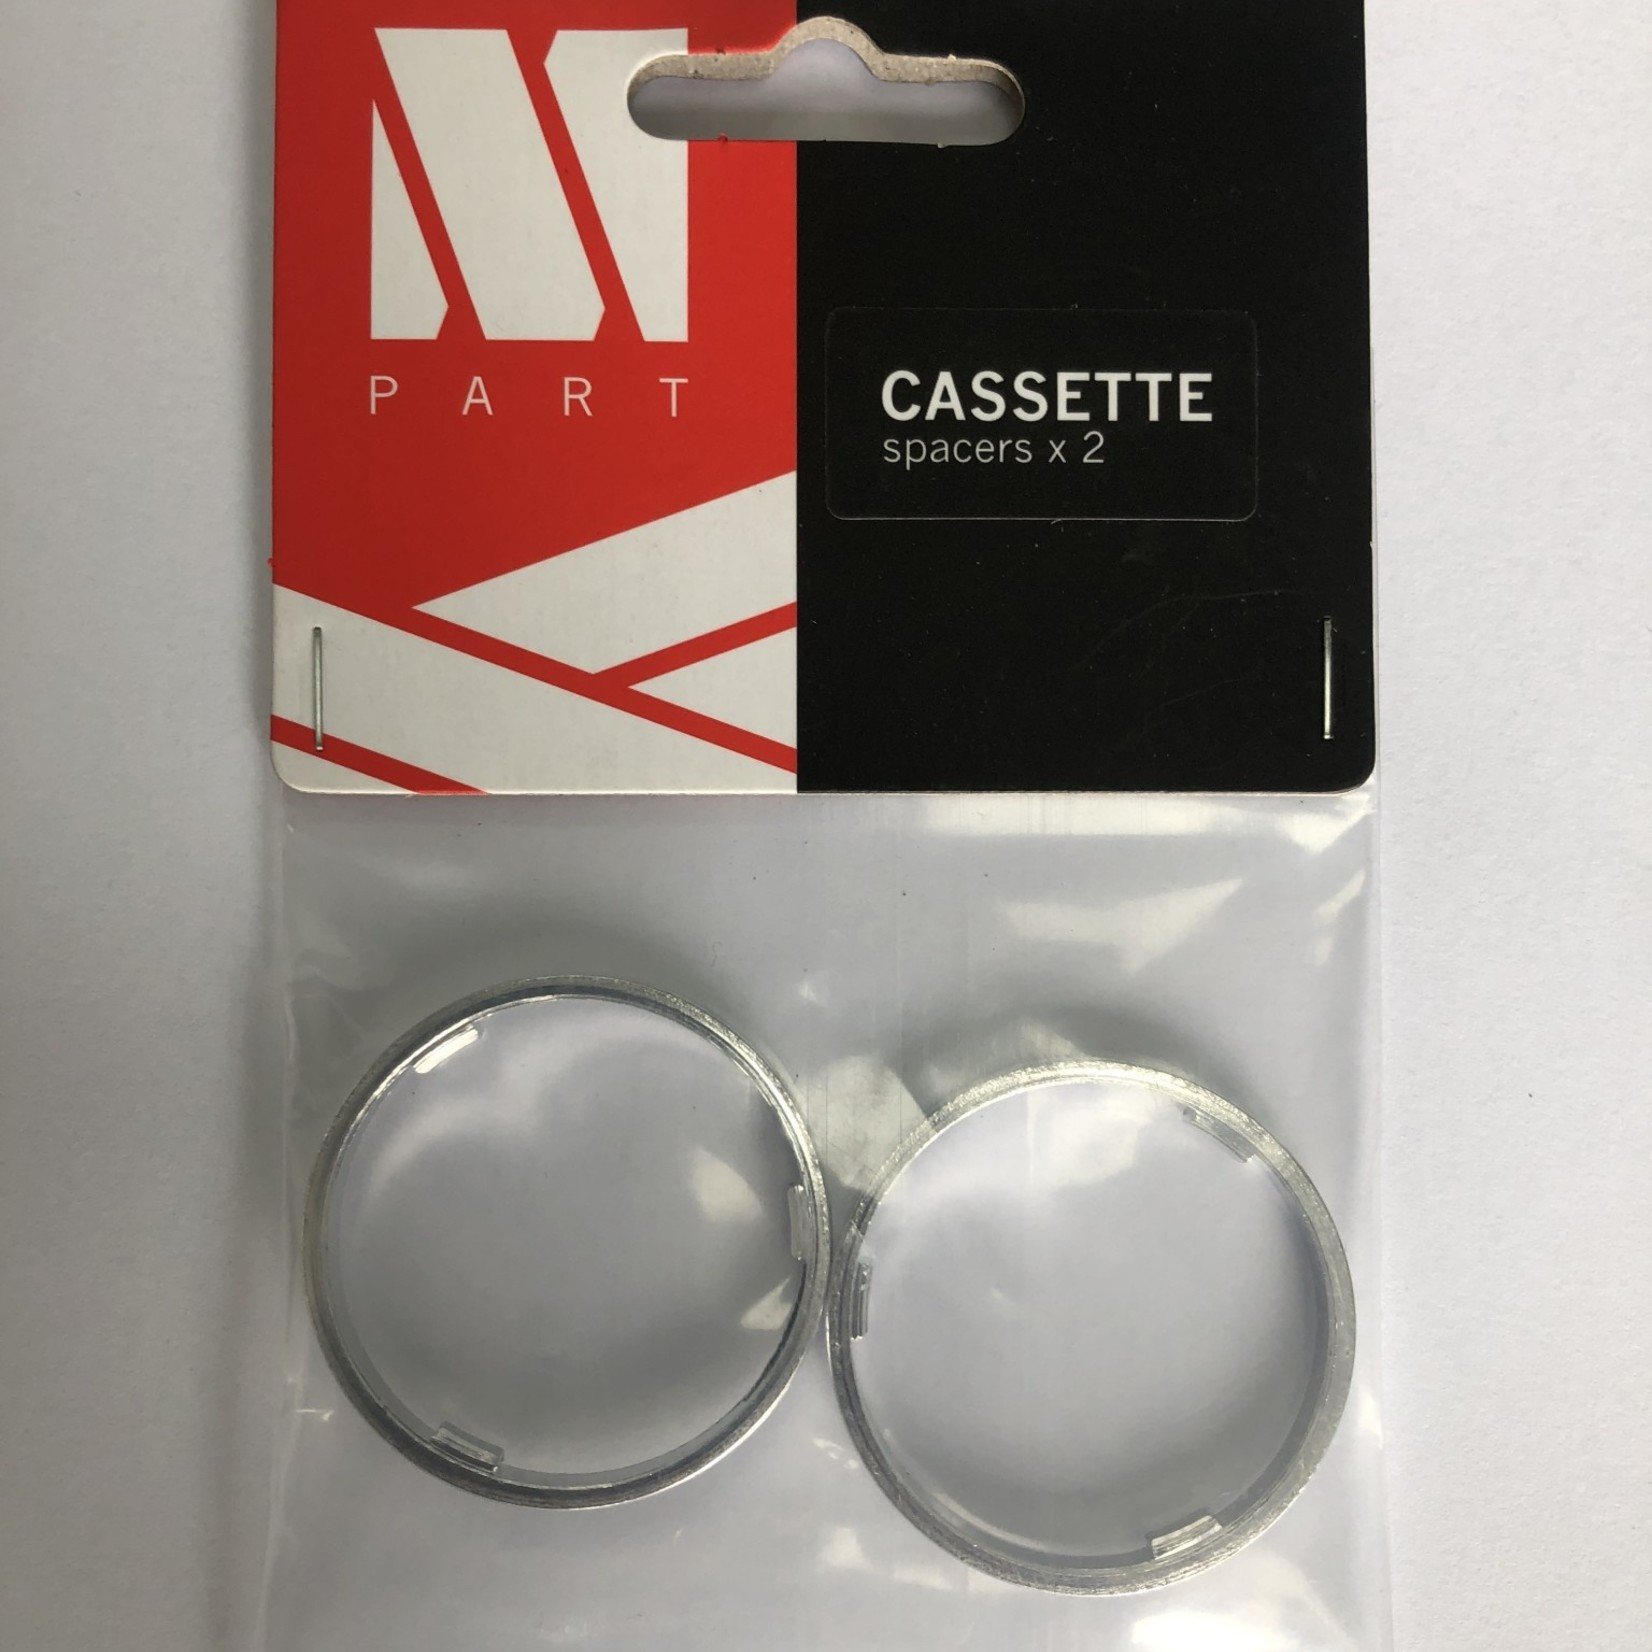 MPart 4mm Cassette Spacers x 2